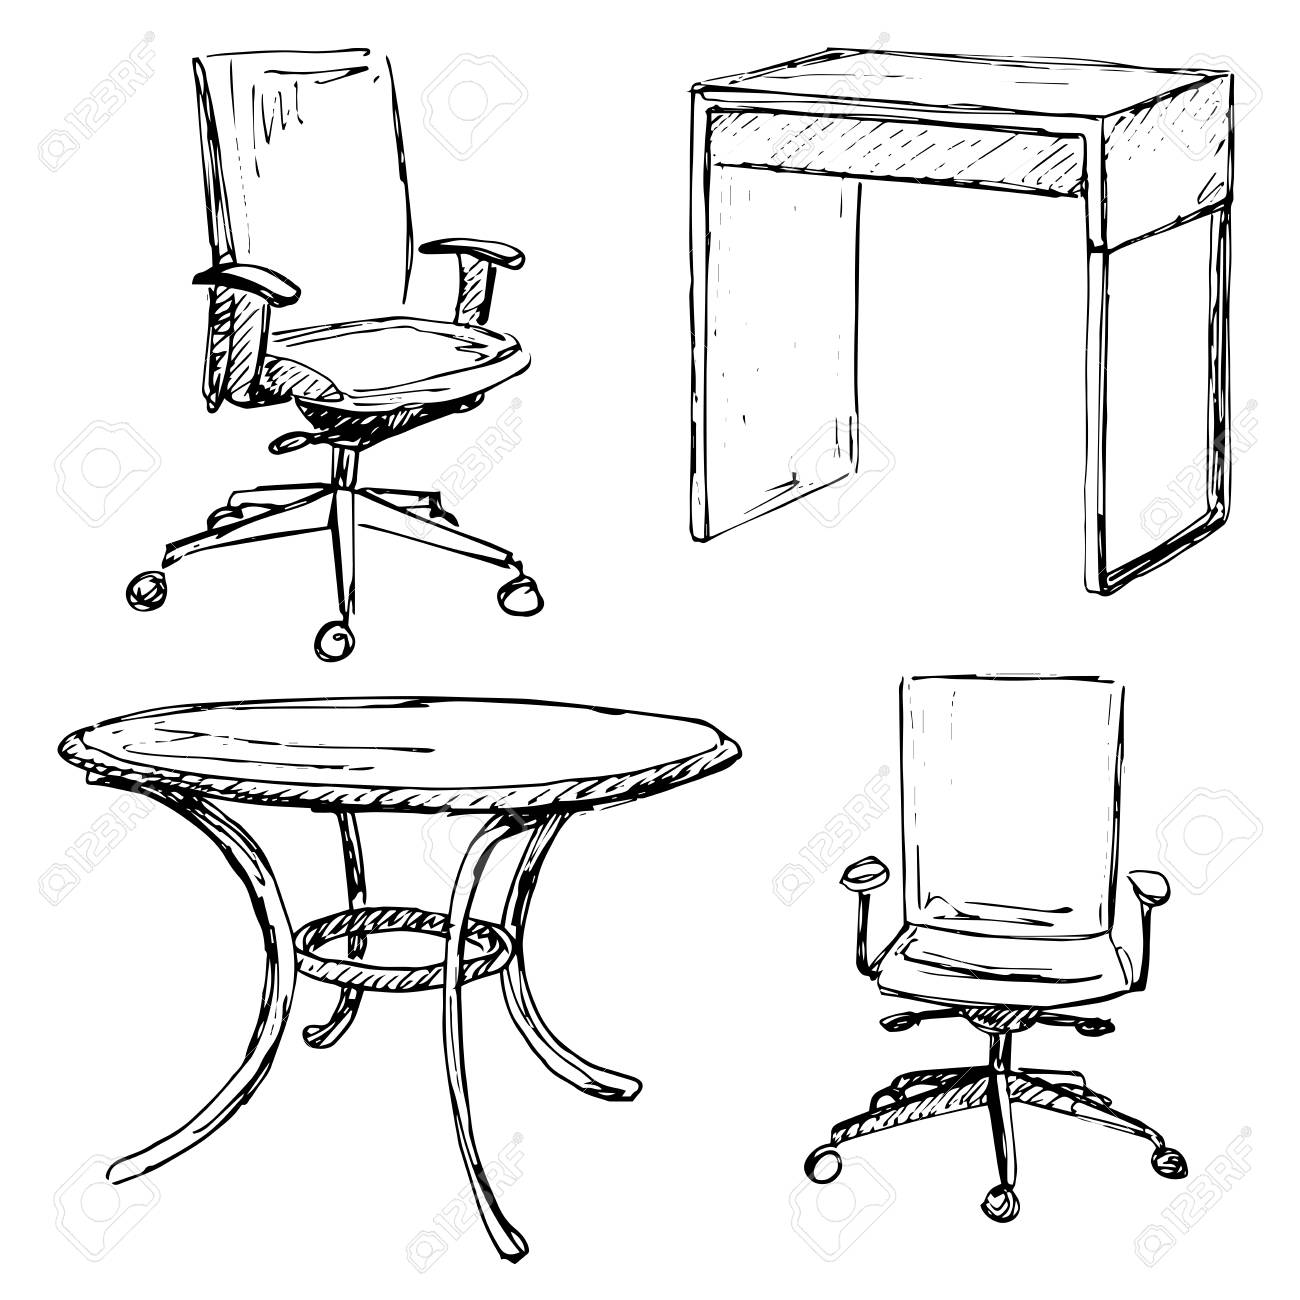 1300x1300 Sketch Set Isolated Furniture. Different Chairs And Table. Linear